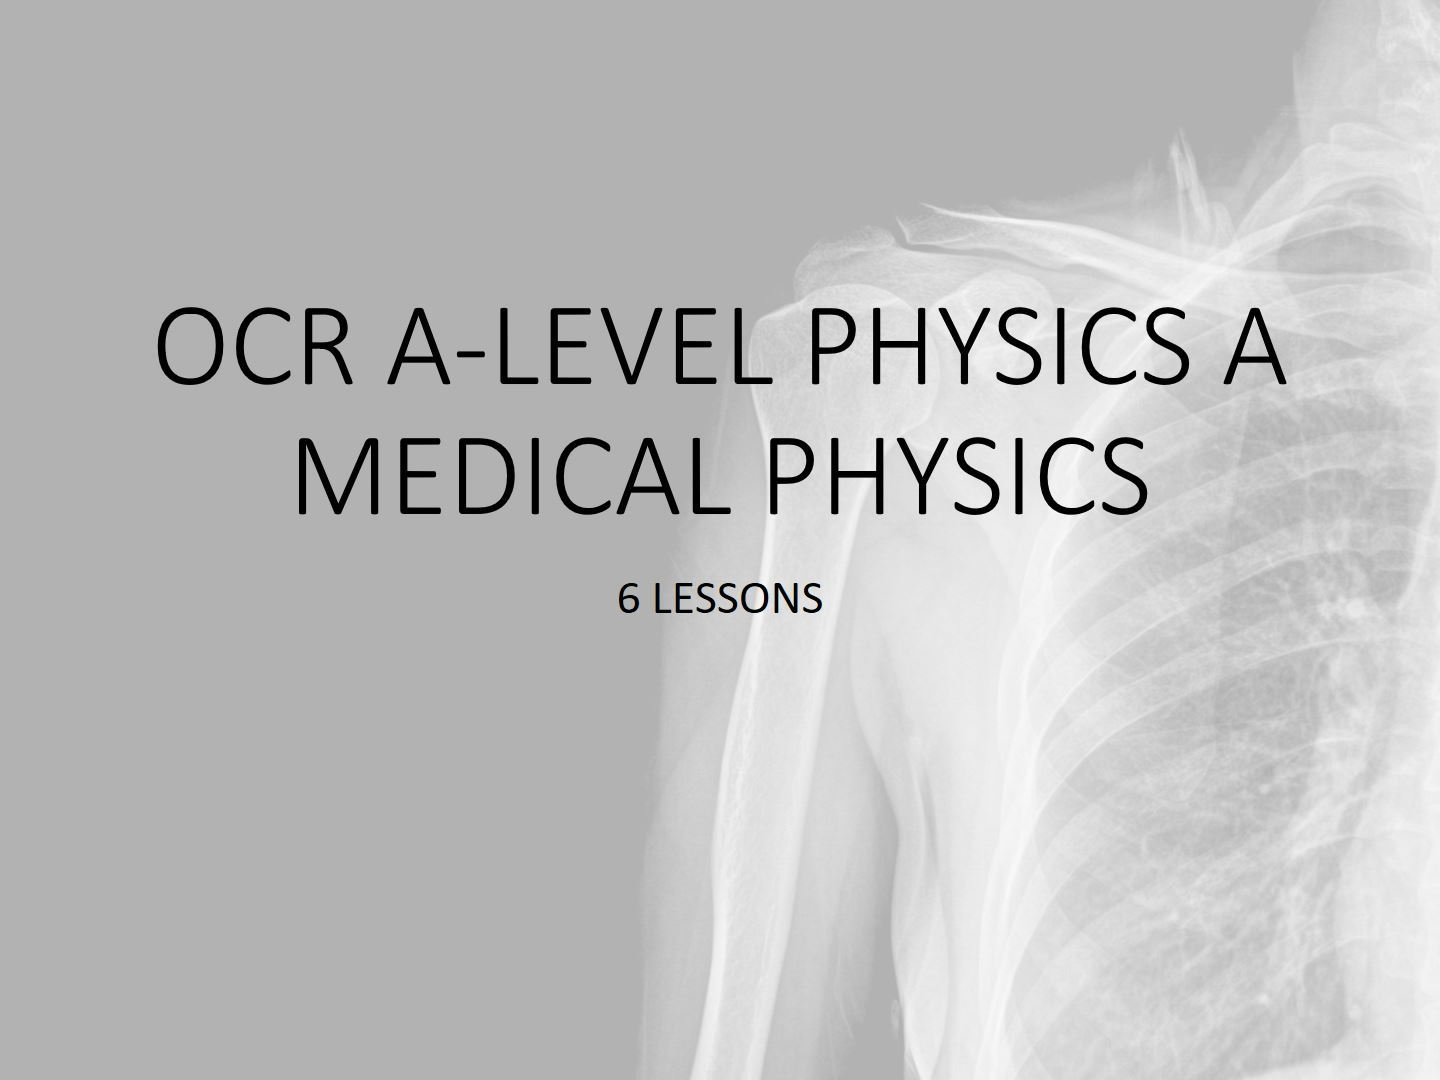 Medical Physics for OCR A-level Physics A